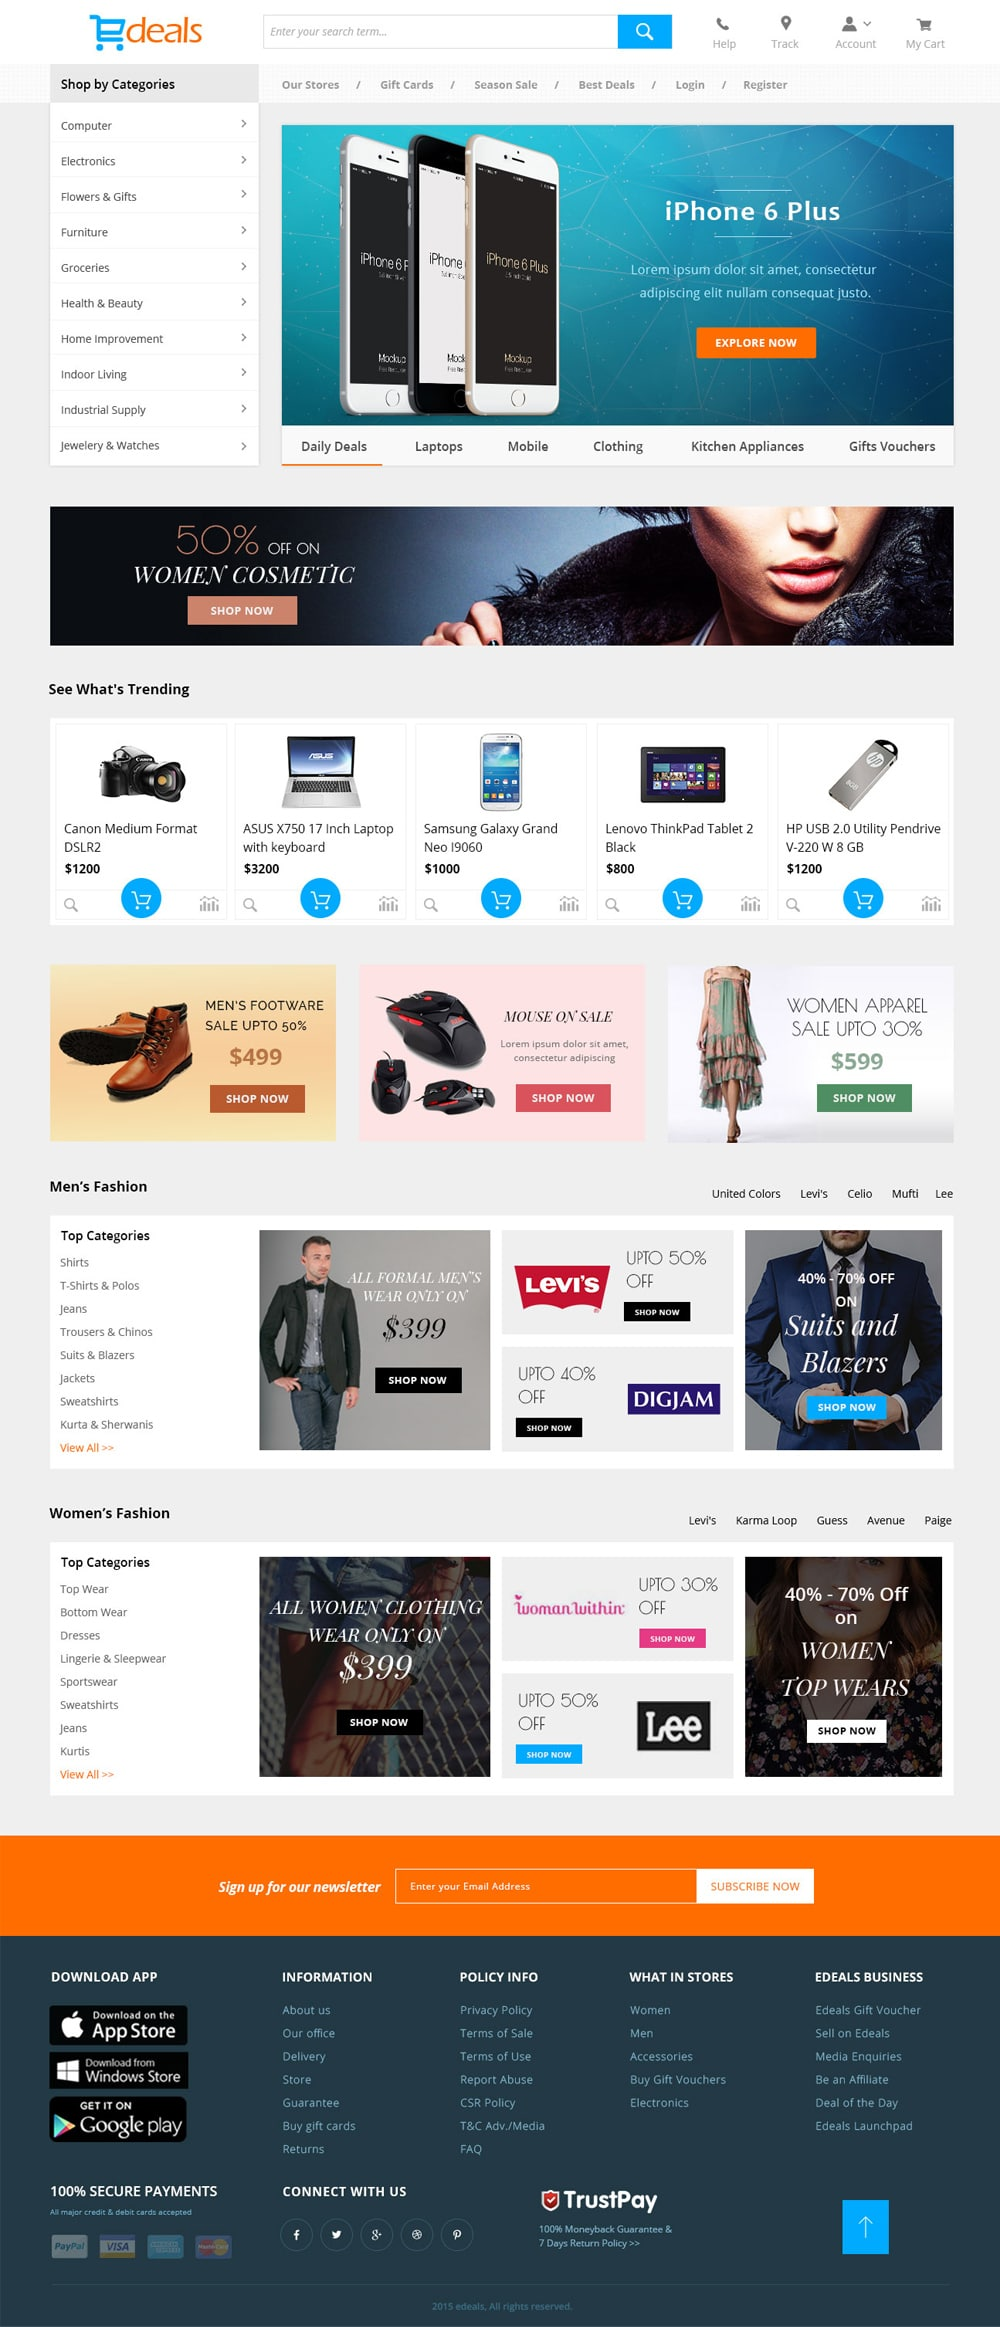 Edeals - Online Shopping Template PSD